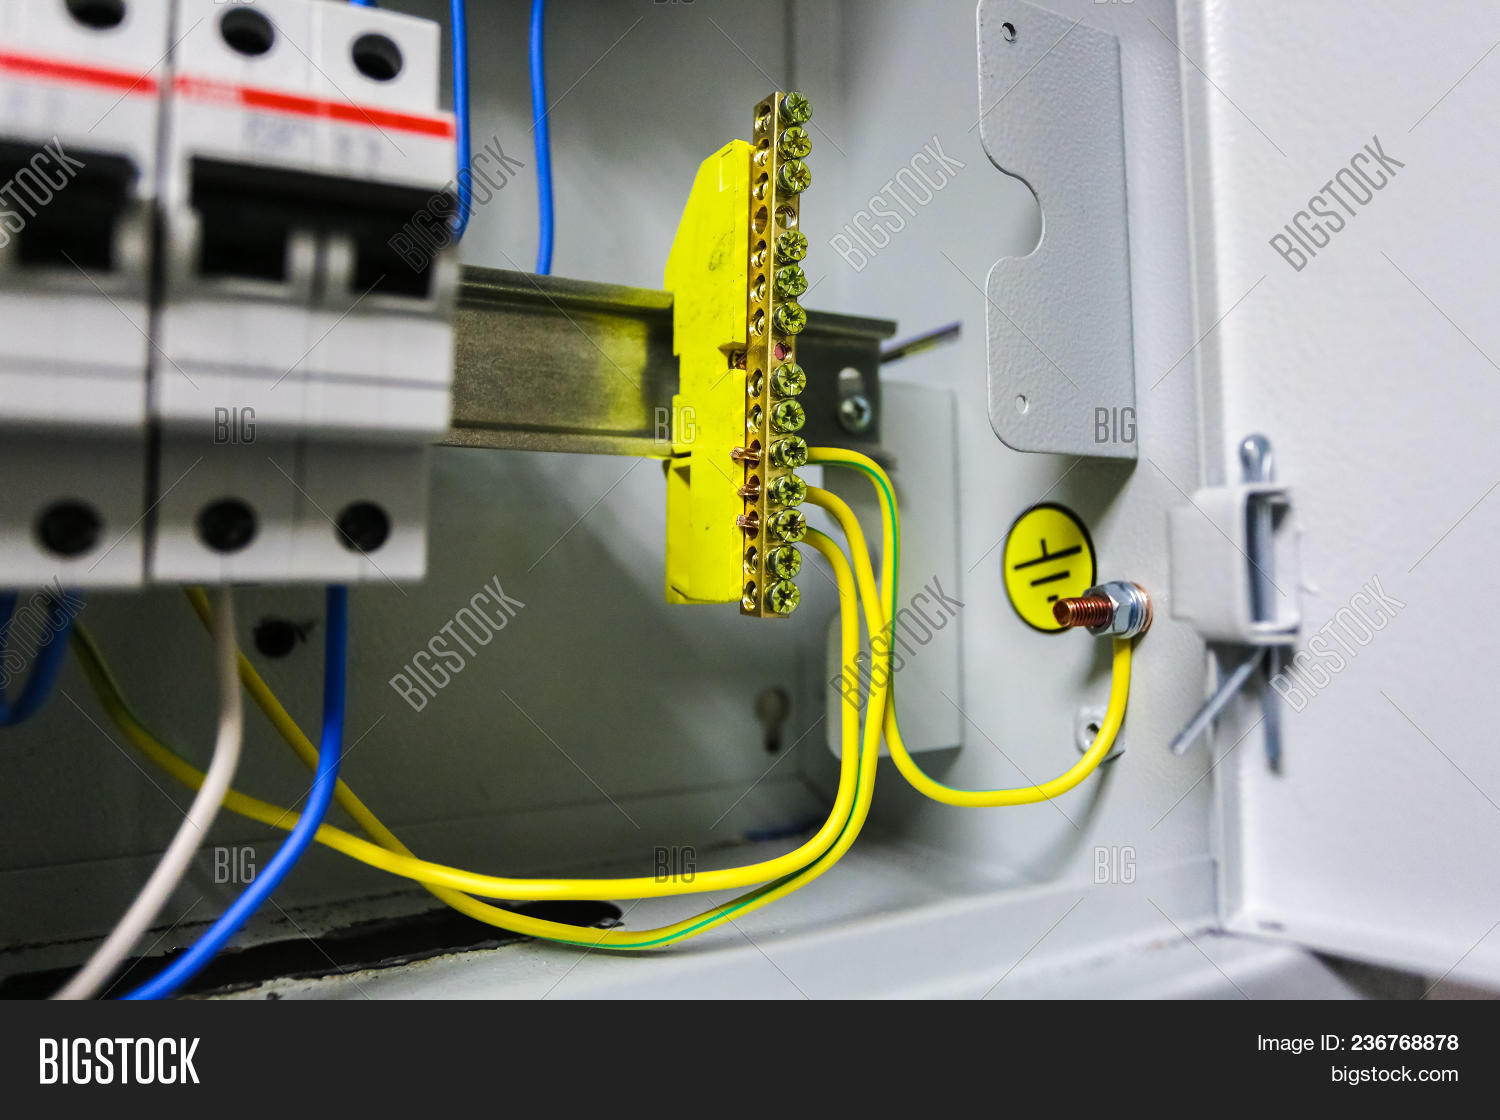 Electrical Yellow Image & Photo (Free Trial) | Bigstock